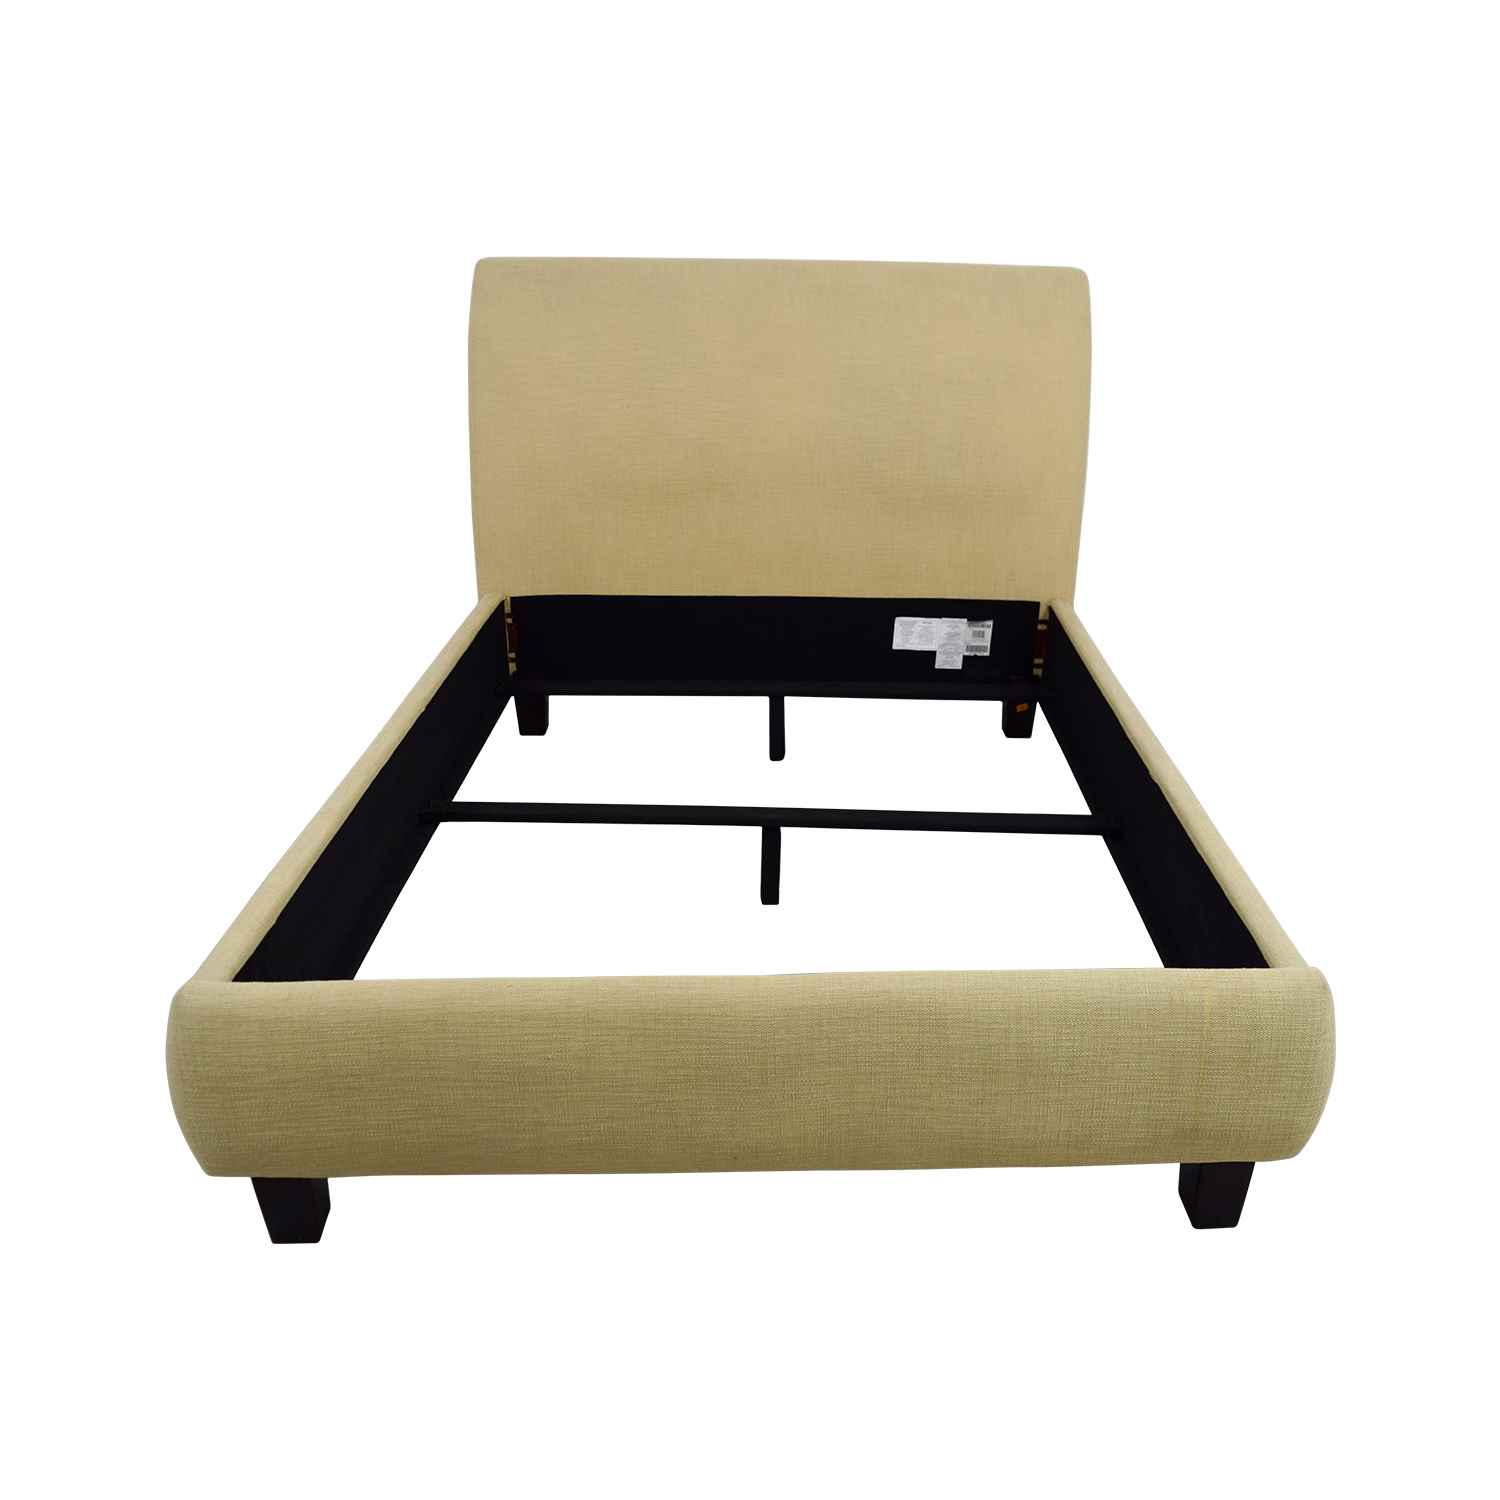 Ashley Furniture Ashley Furniture Upholstered Queen Bed Beds